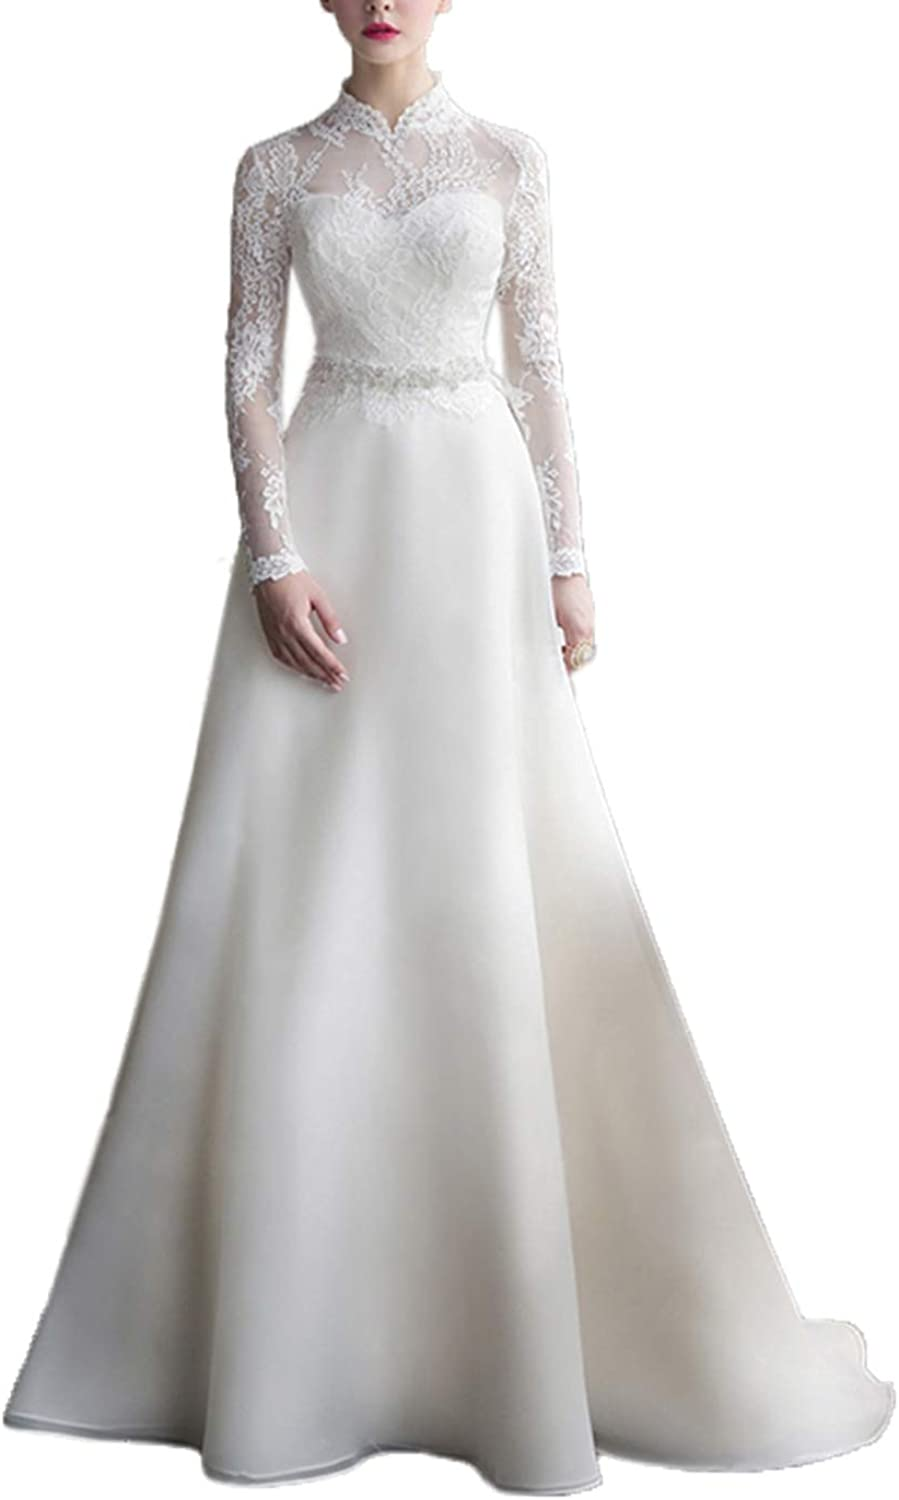 Quintion Norris High Neck Lace Aline Wedding Dress Long Sleeve Bride Gown